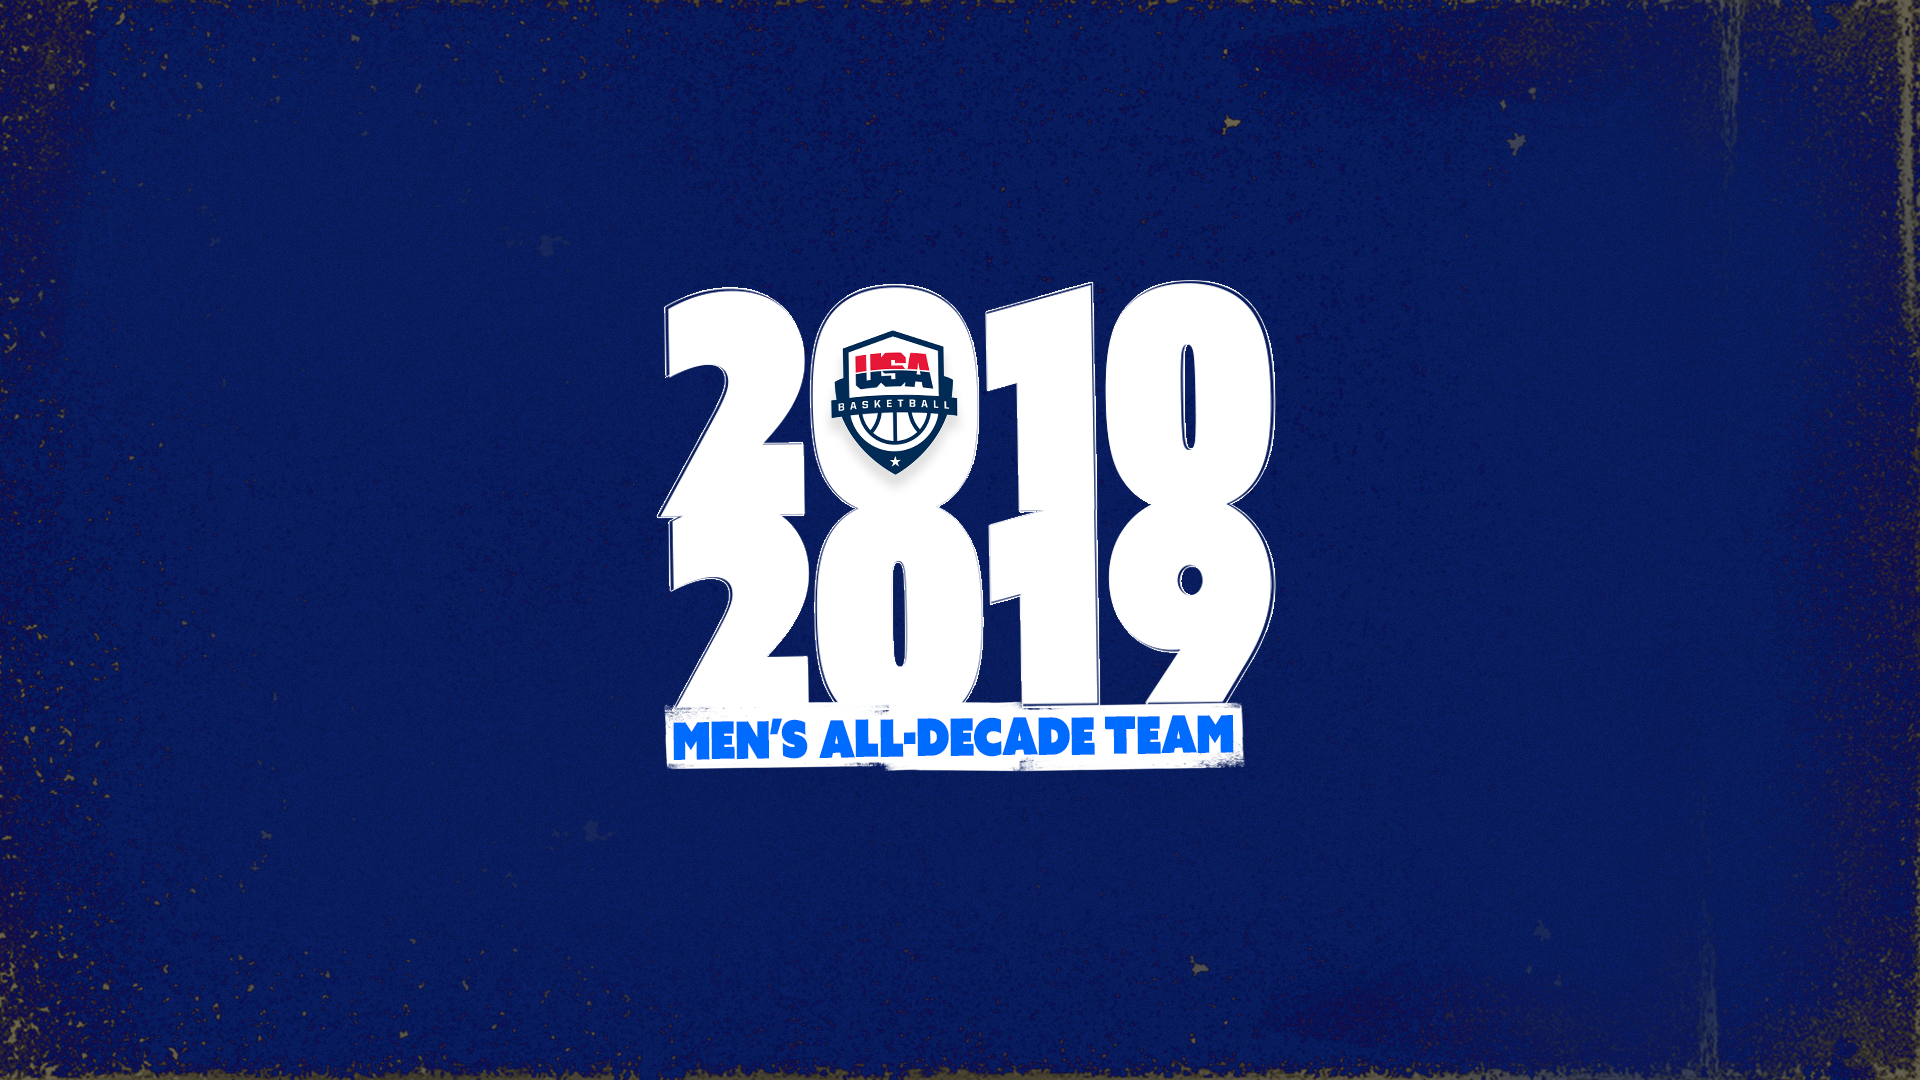 USA Men's All-Decade Team